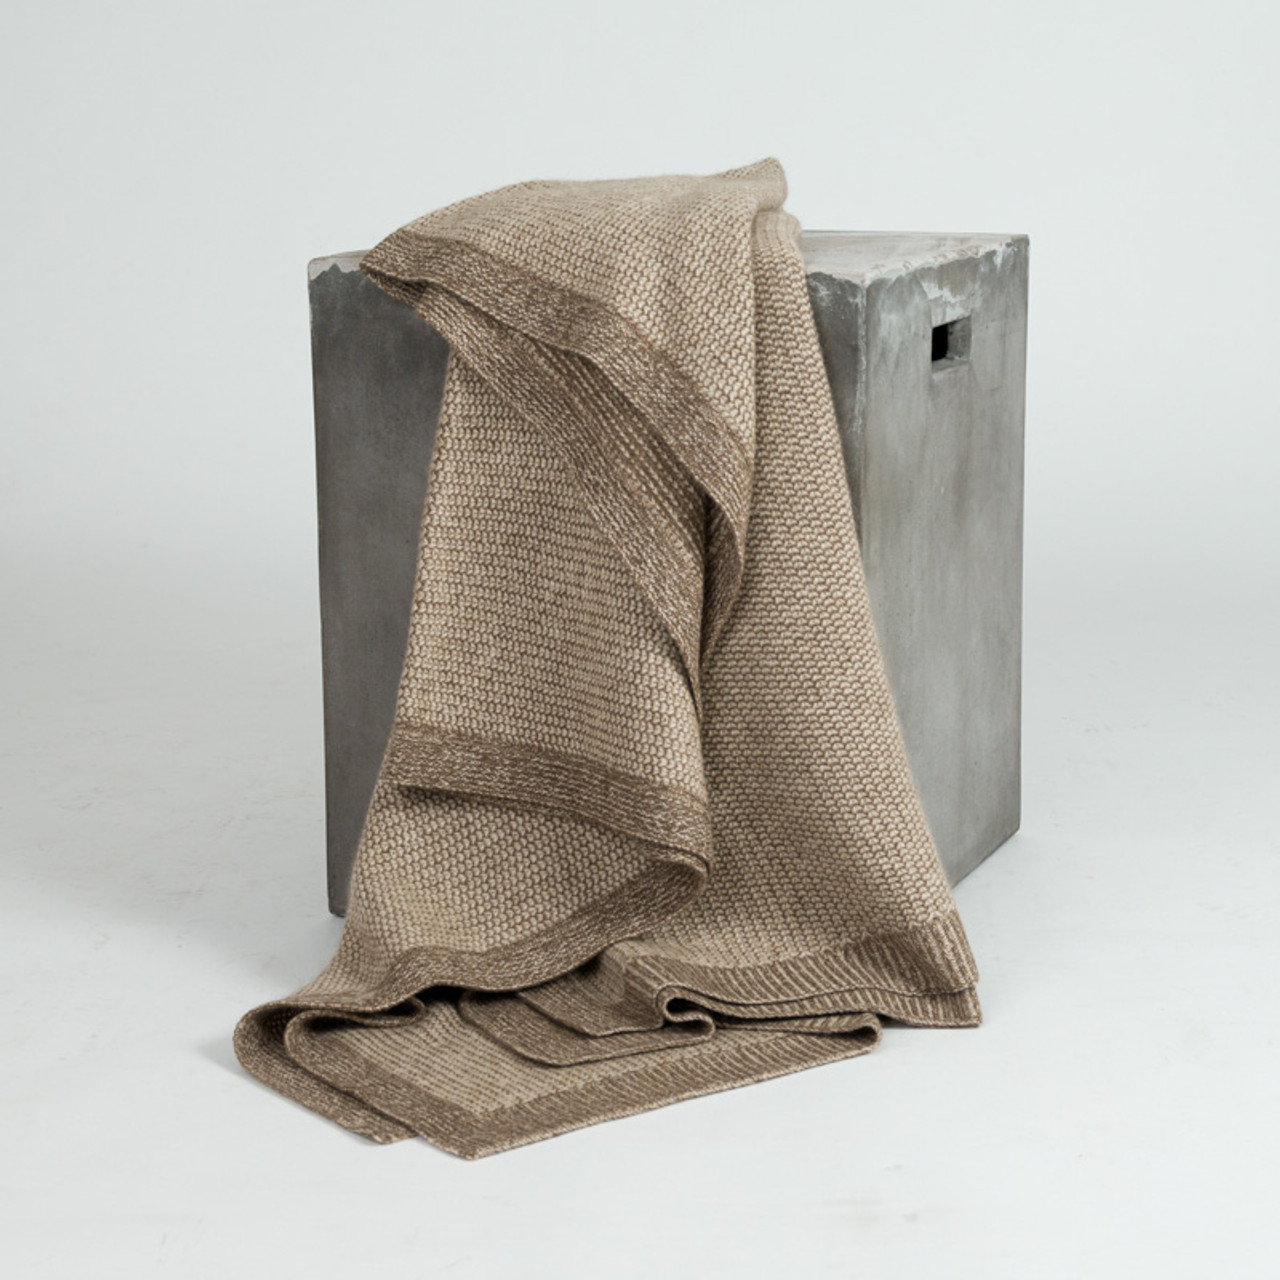 The Beehive Knit Throw